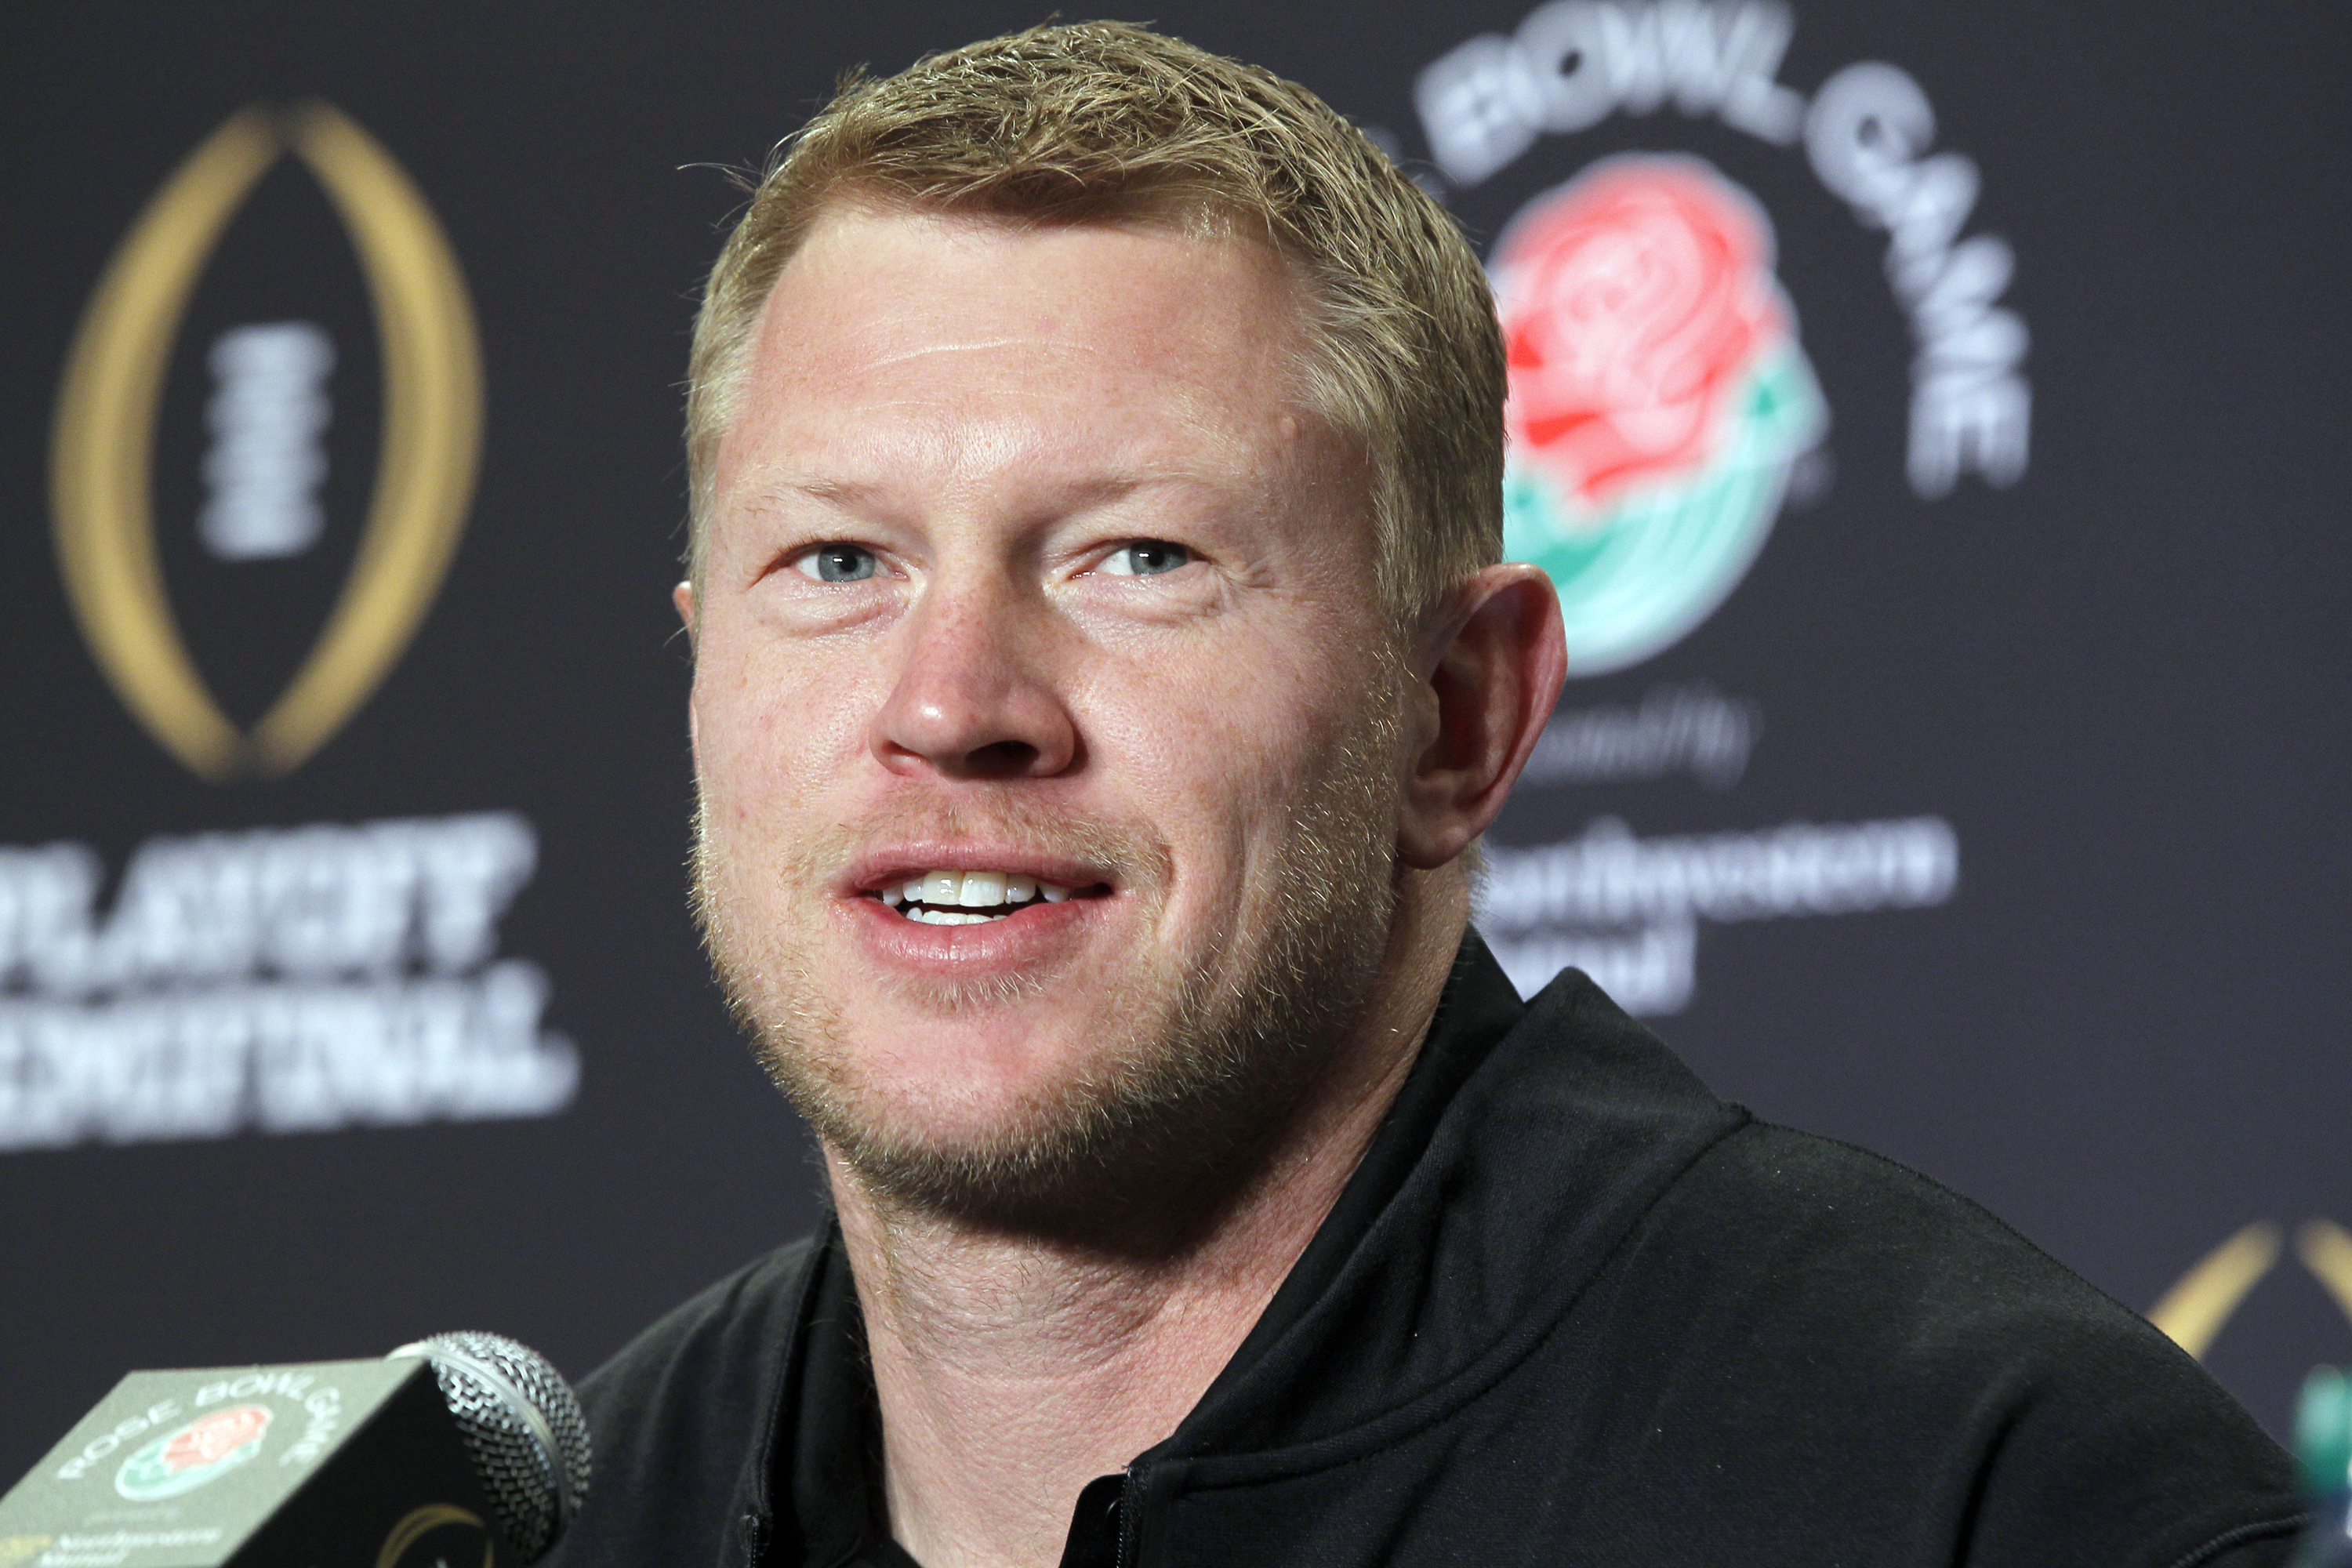 FILE - In this Dec. 30, 2014, file photo, Oregon offensive coordinator Scott Frost talks to reporters during a news conference in Los Angeles. Central Florida has hired Oregon offensive coordinator Scott Frost as its new coach to take over a program that